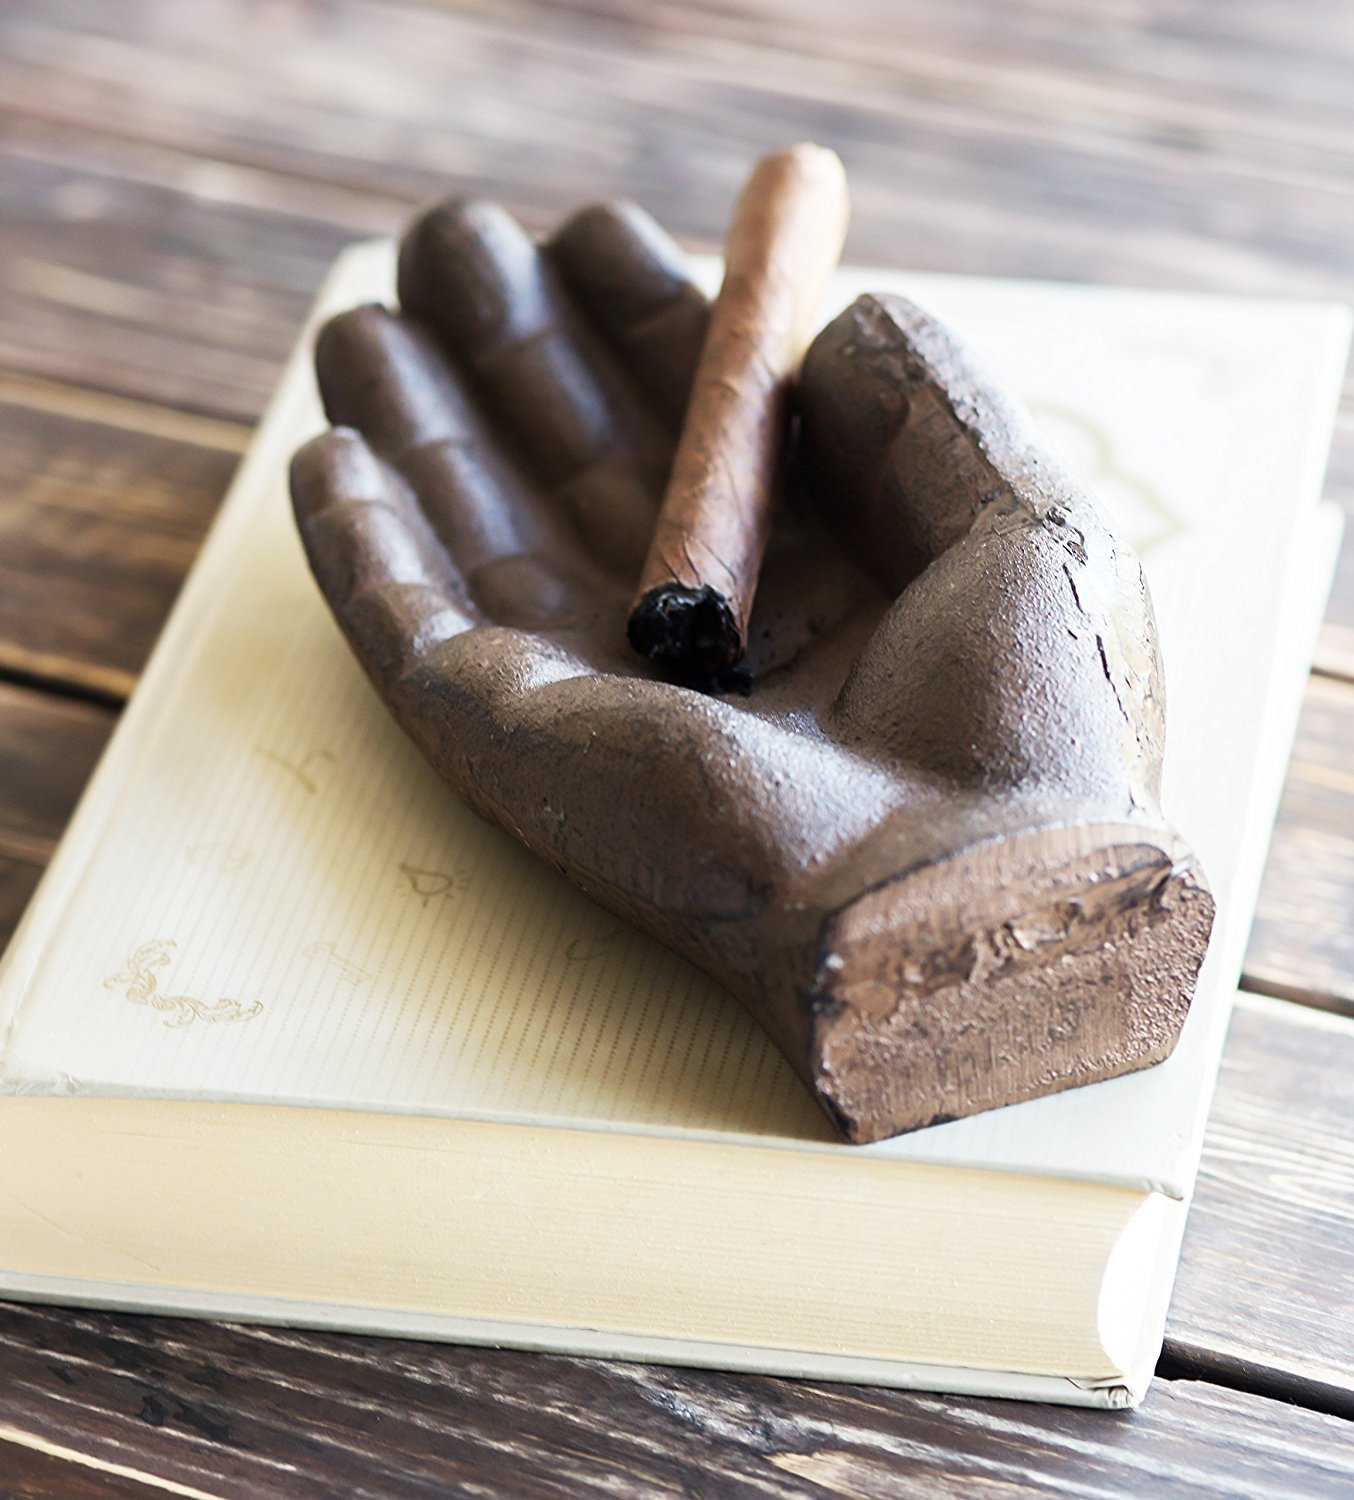 [Independence Day Sale] Cigar Ashtray | Cast Iron Hand Antique Ashtray | Use as Outdoor Ashtray or Indoors, Cigarette Ashtray, Personal Ashtray | Decorative Ashtray by Comfify